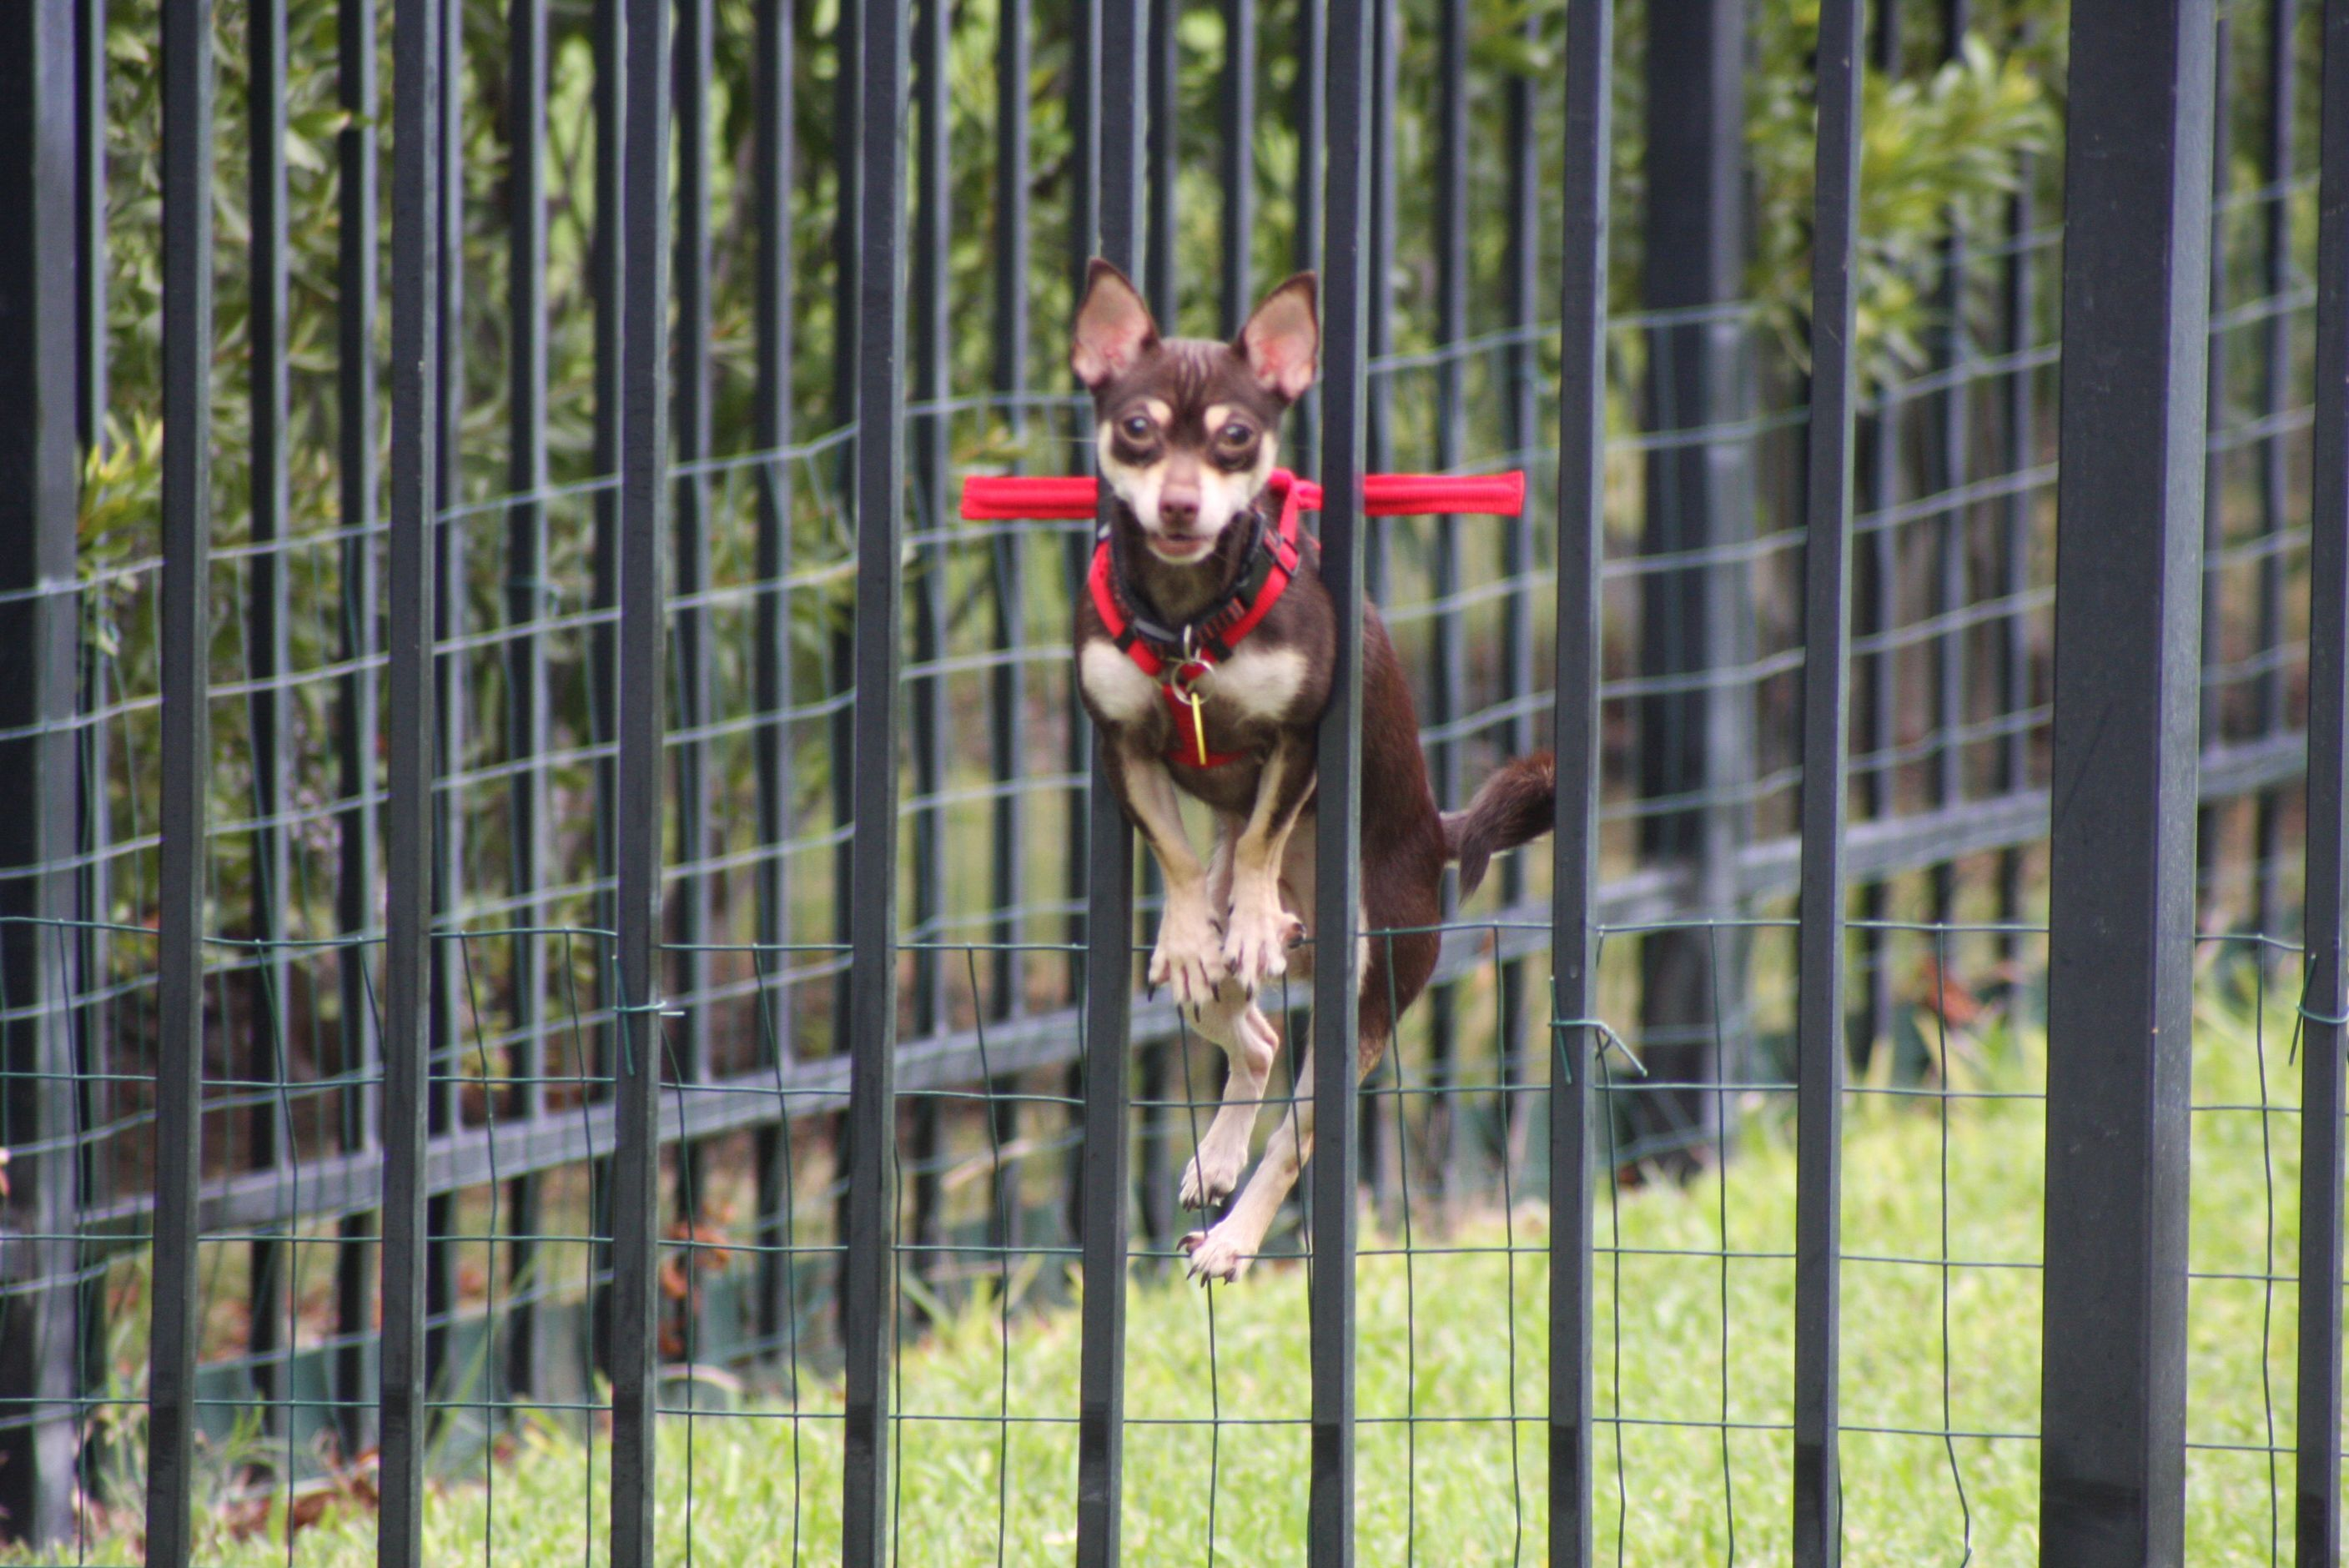 The Safe Behind Bars Dog Harness Keeps Your Small Dog From